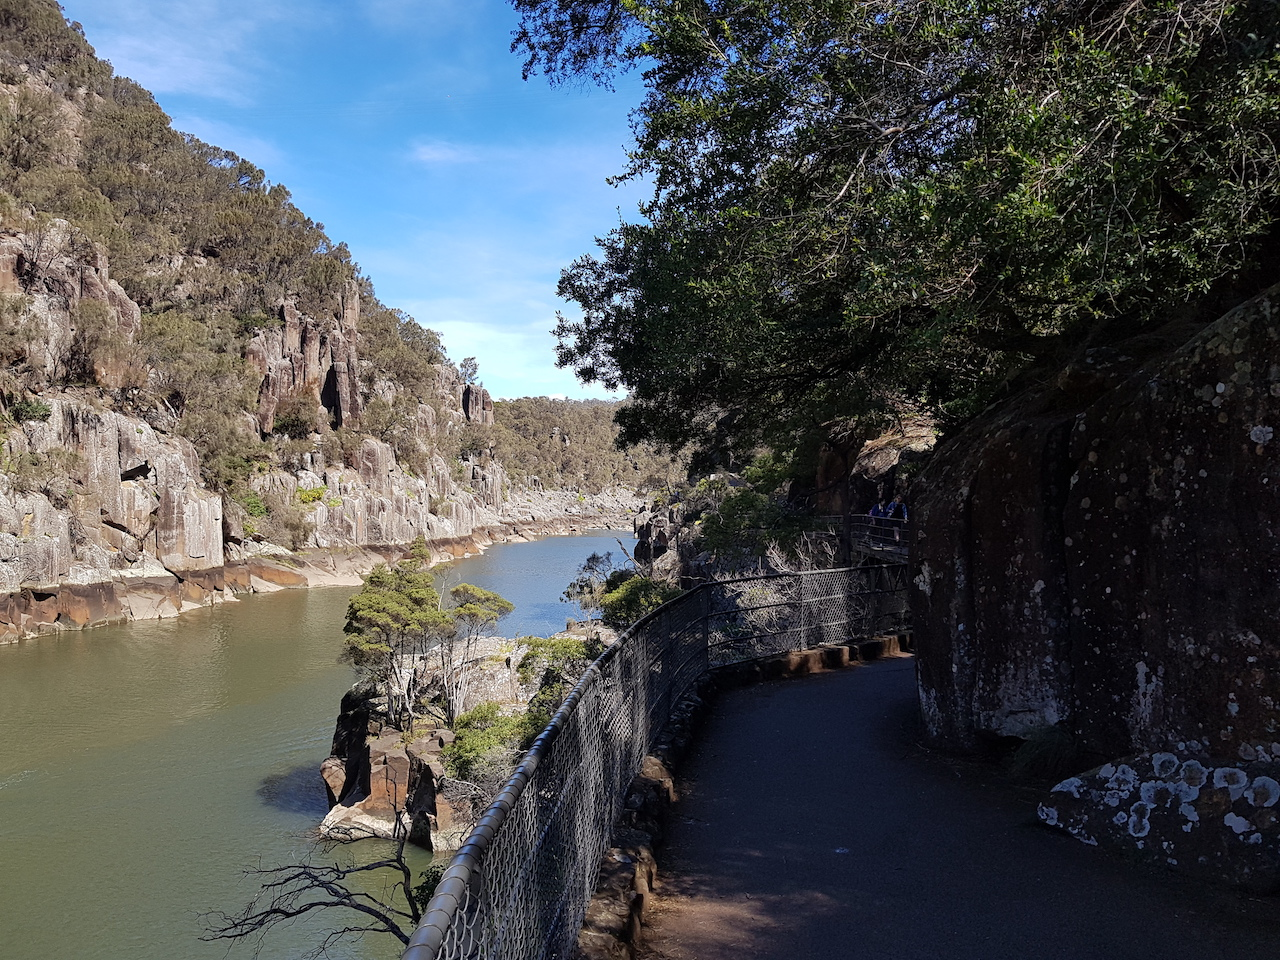 Cataract Gorge in Launceston